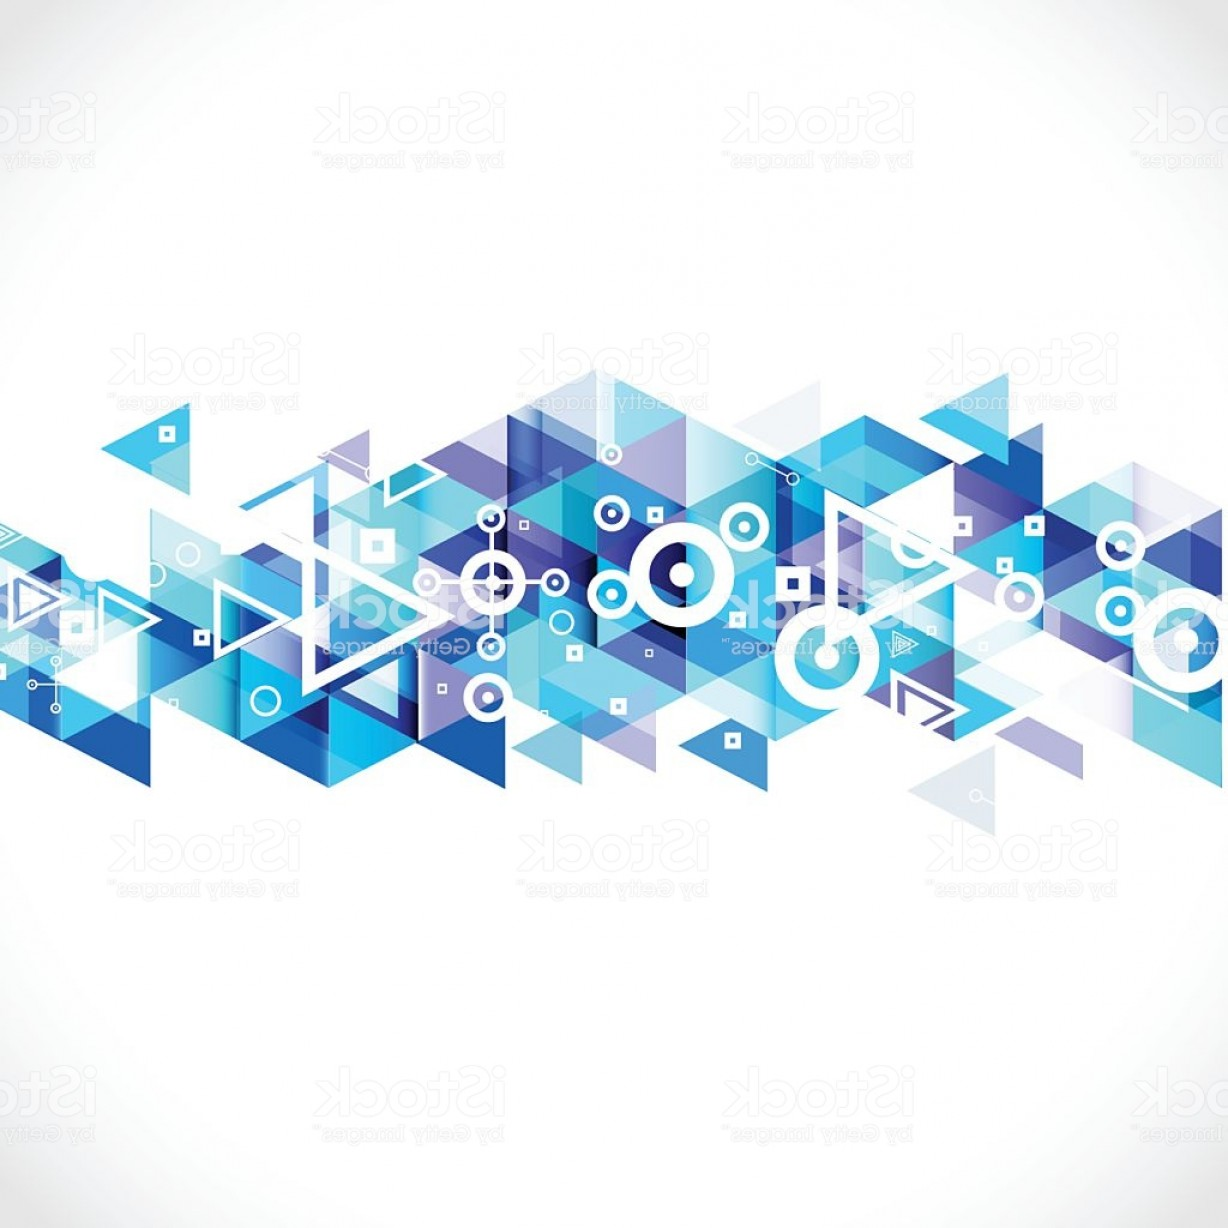 Free Technology Vector Graphics: Abstract Blue Geometric Strip Modern Graphic For Business Or Technology Gm